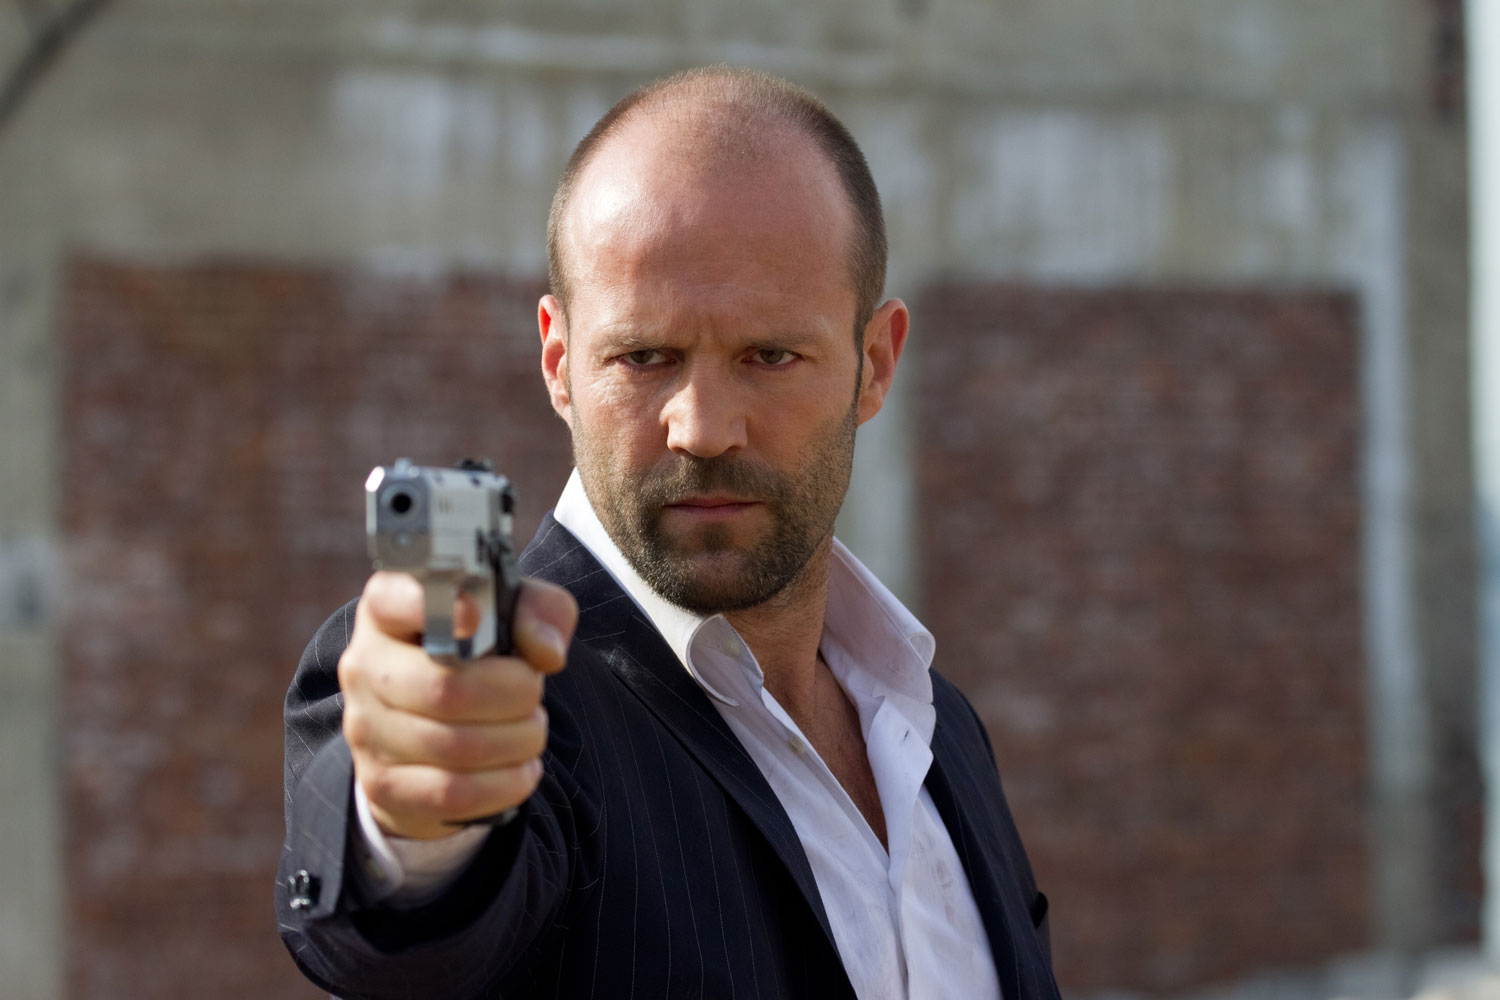 Jason Statham may be typecast as an antihero, but he wasn't always the bad boy actor. In his youth, he took martial arts, played football and was a diver. He was a member of Britain's National Diving Squad for 12 years before competing at the 1990 Commonwealth Games. While working as a model for French […]